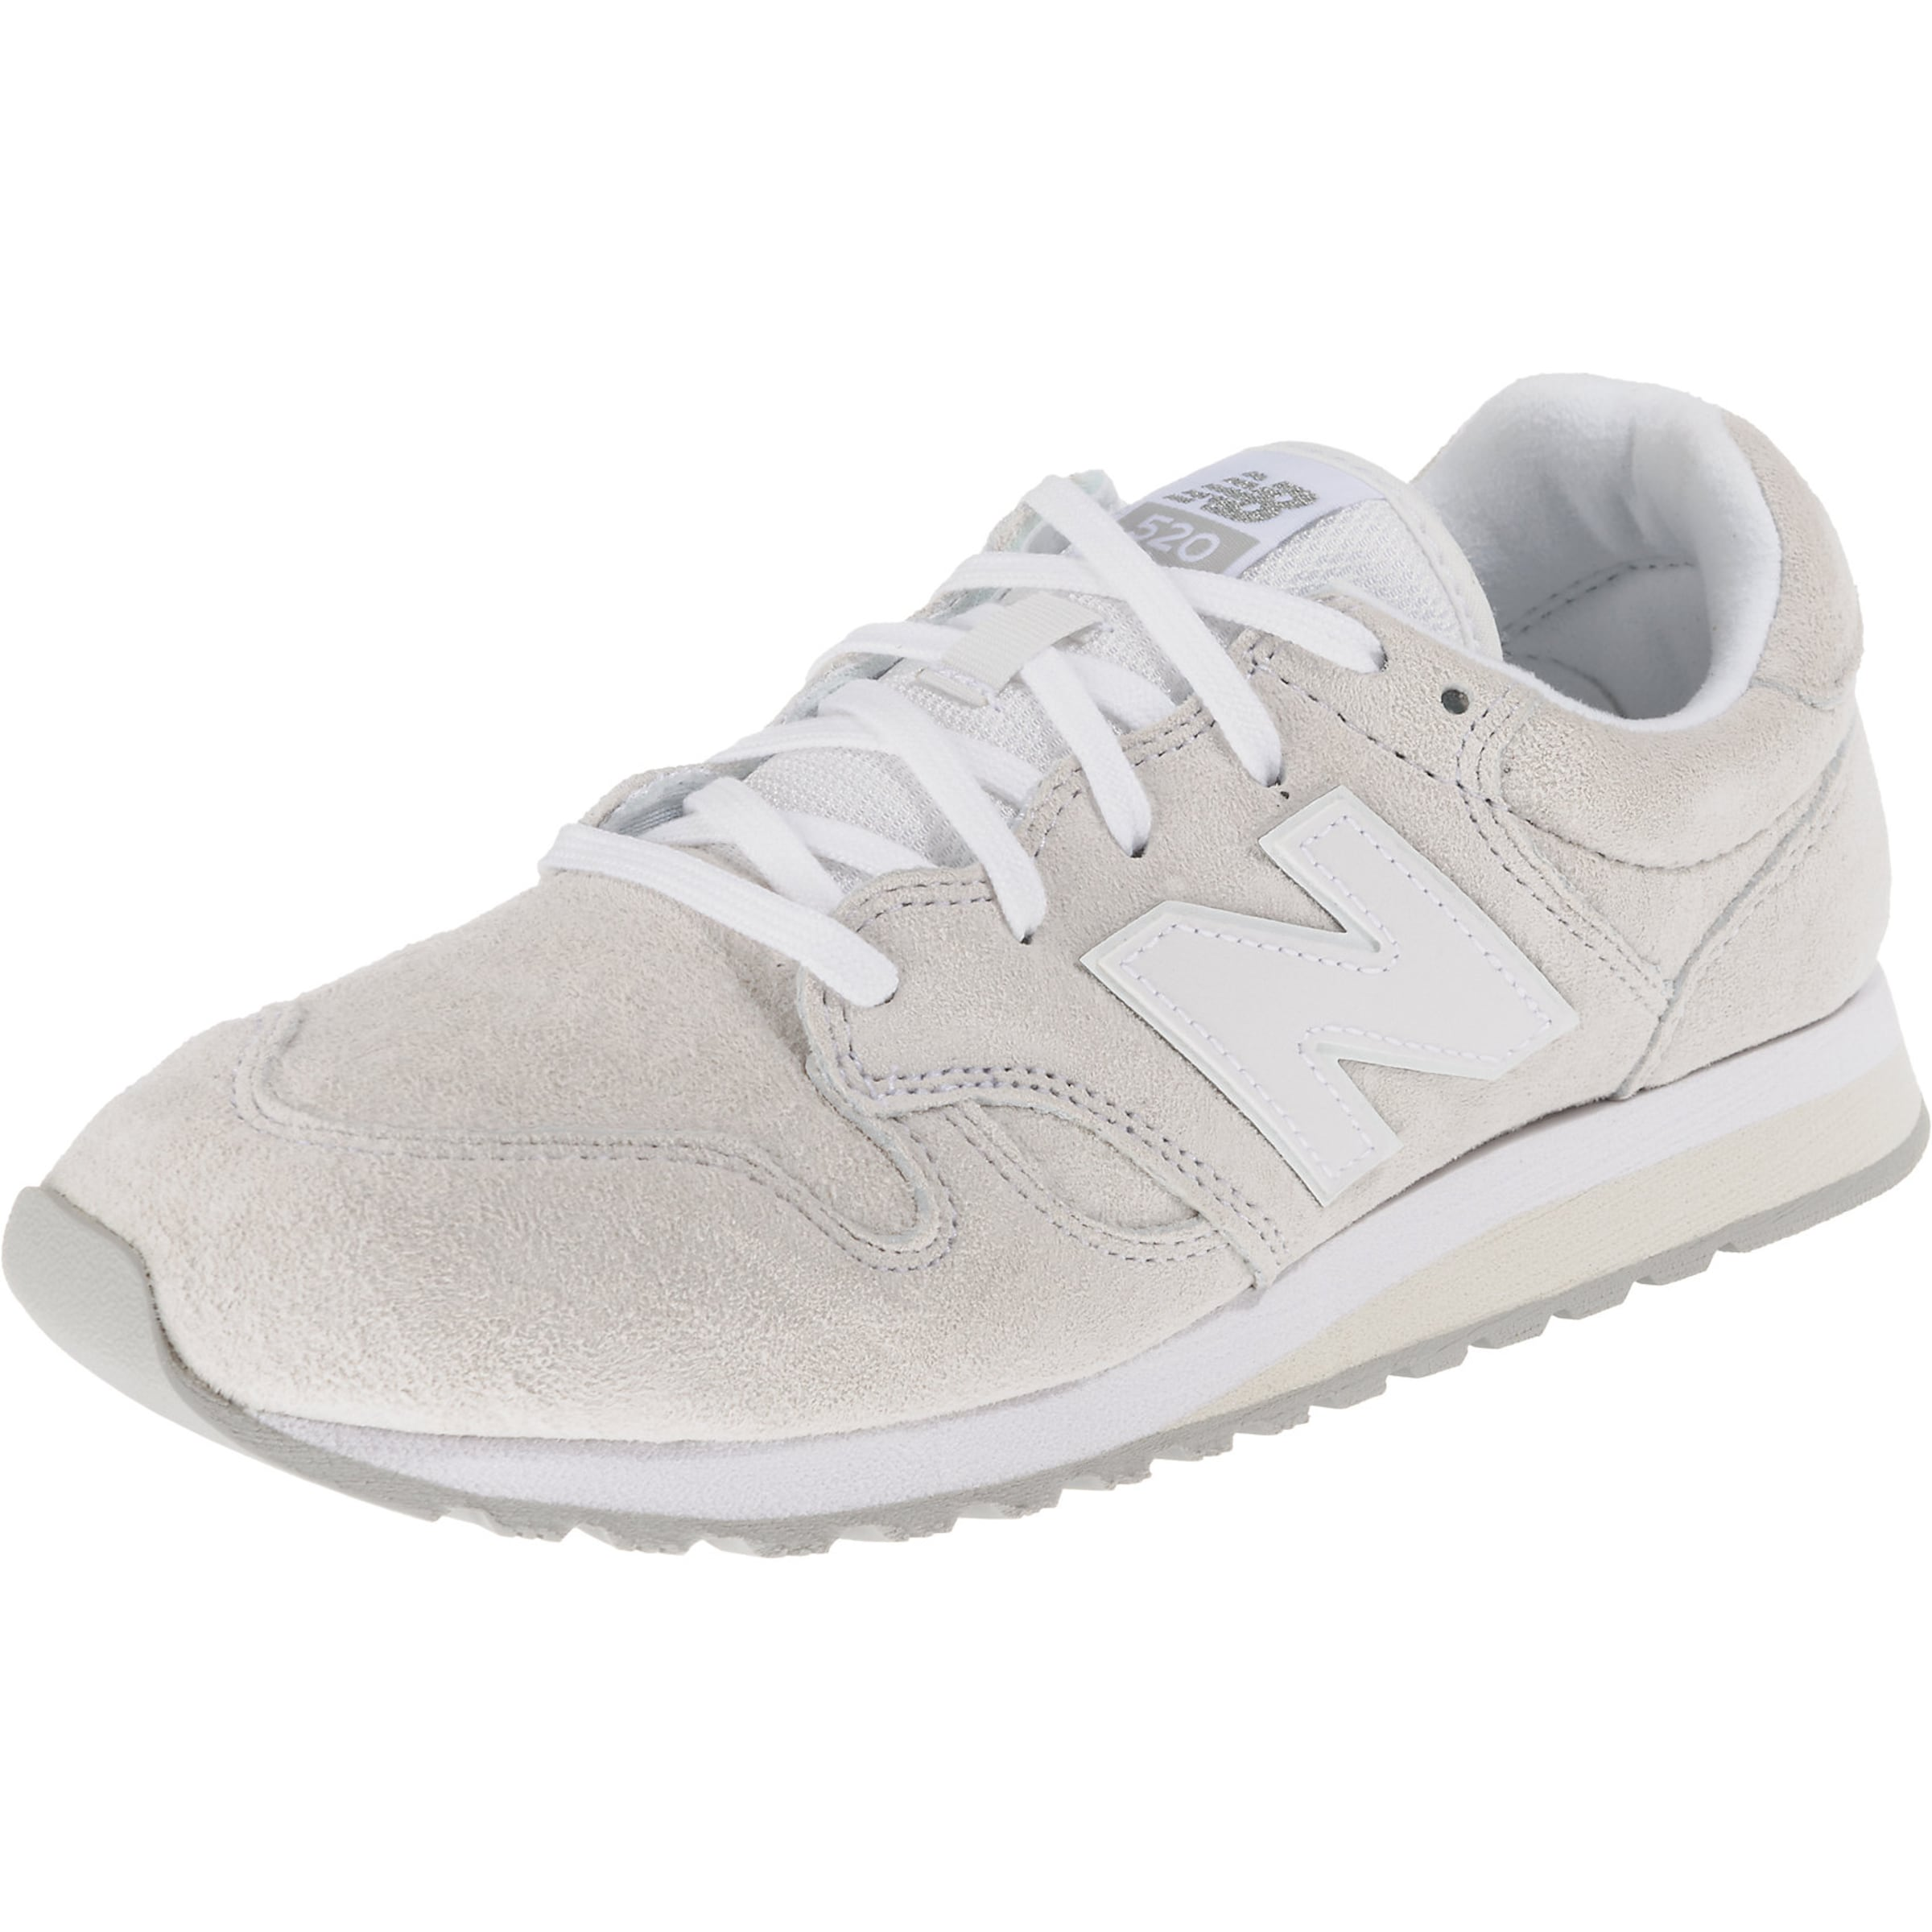 Balance 'wl520' CamelWeiß New Sneakers In vYb6gf7y